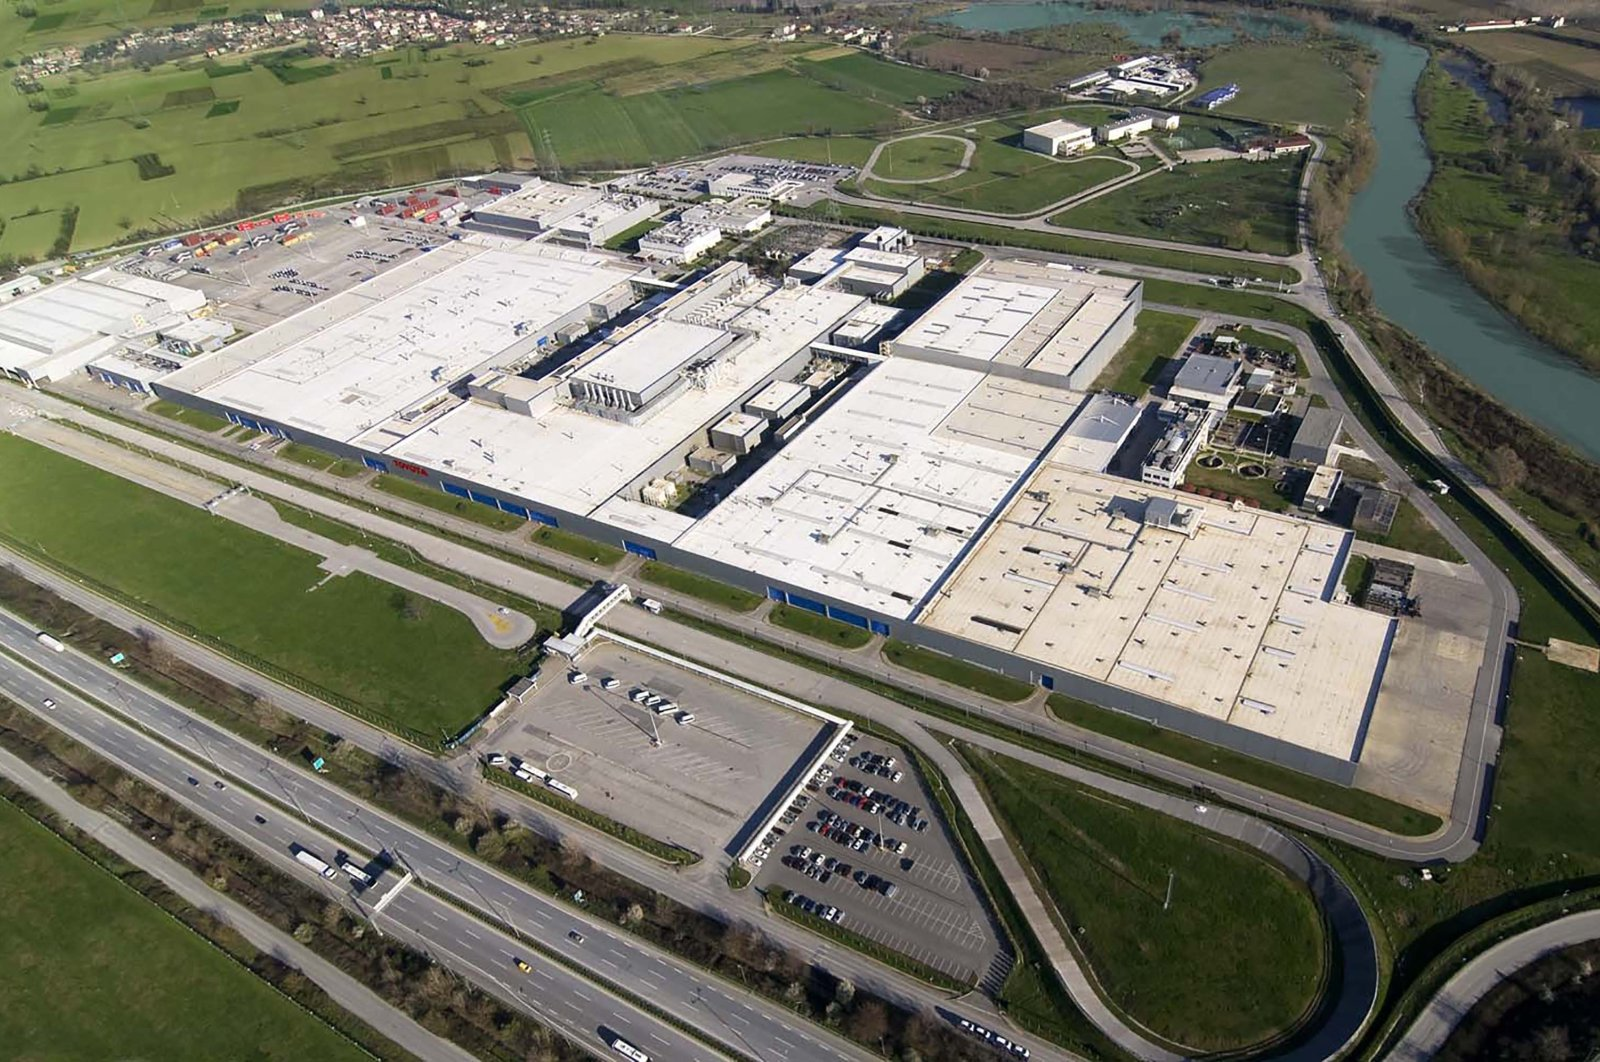 Toyota Motor Manufacturing Turkey's factory in the Adapazarı district of the northwestern Sakarya province is seen in this updated photo. (Courtesy of Toyota Turkey)